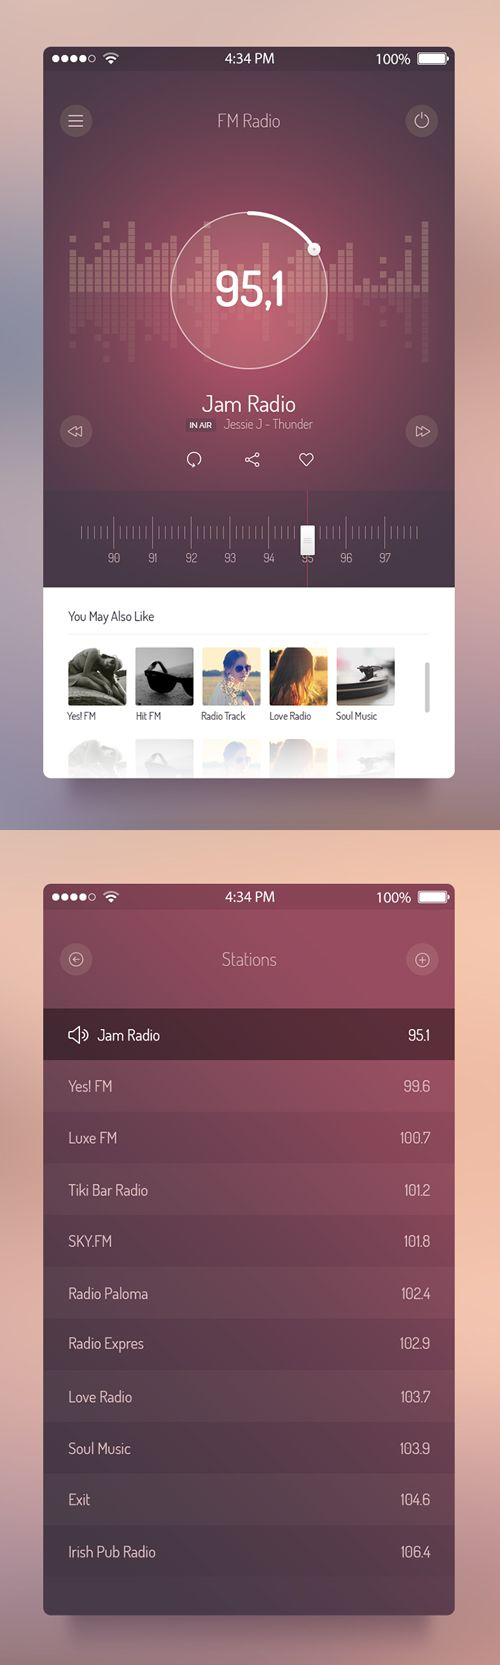 Amazing Mobile App UI Designs with Ultimate UX | Inspiration | Graphic Design…